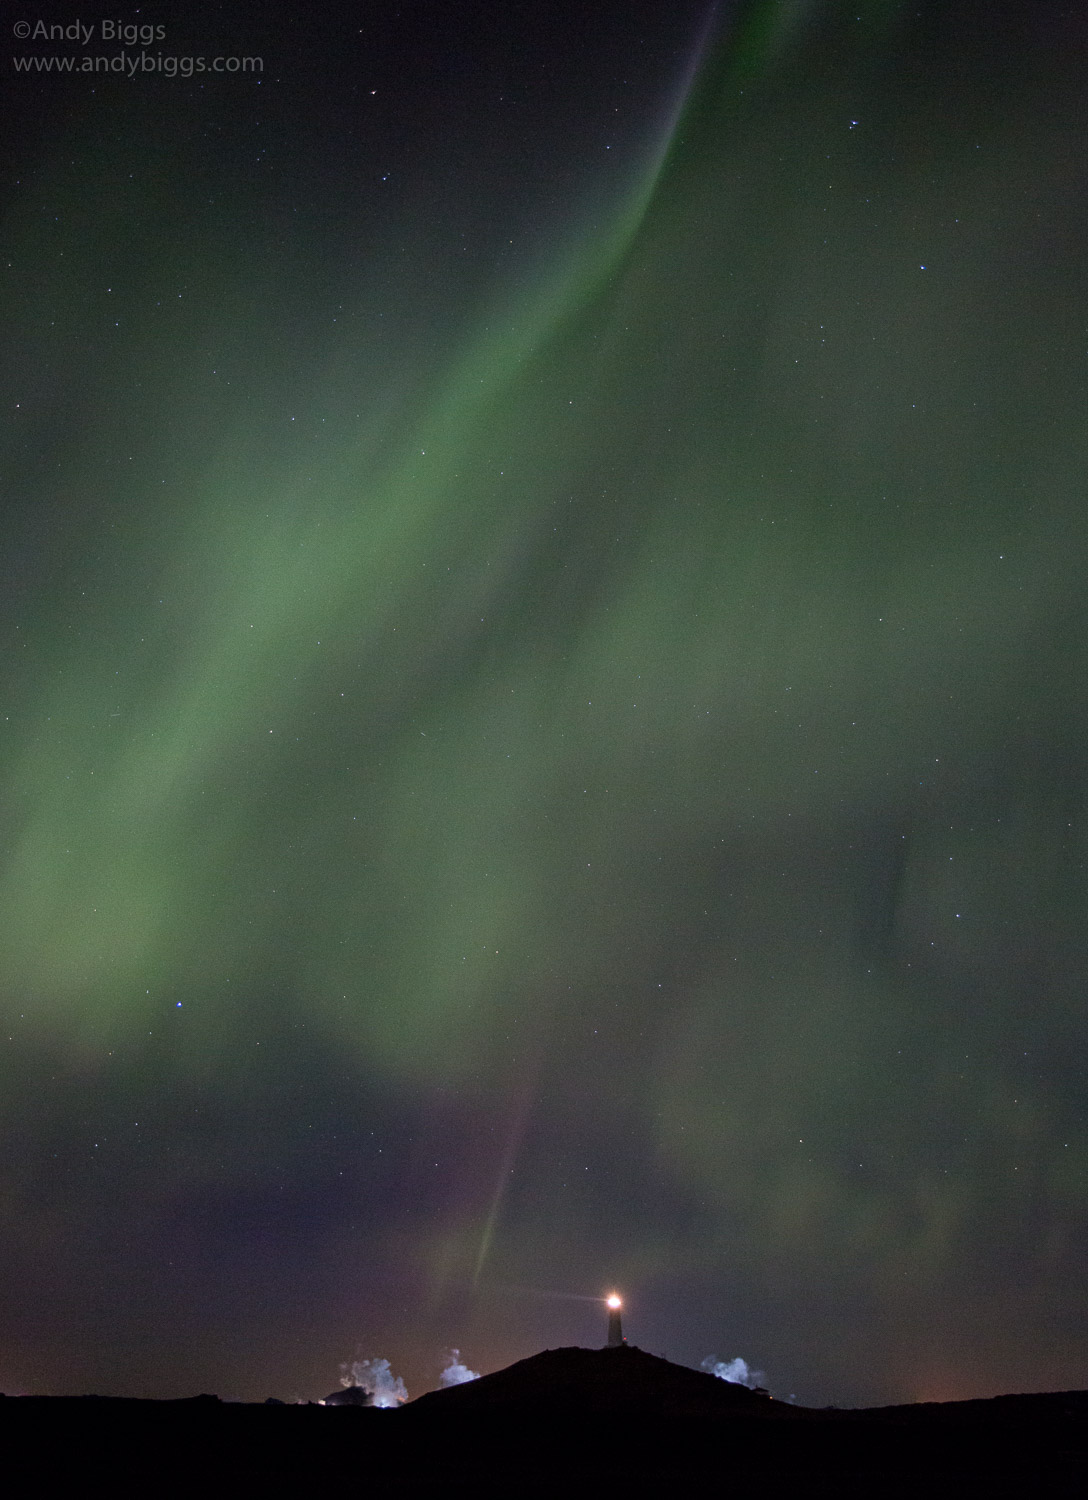 AndyBiggs_031713_Iceland_107.jpg